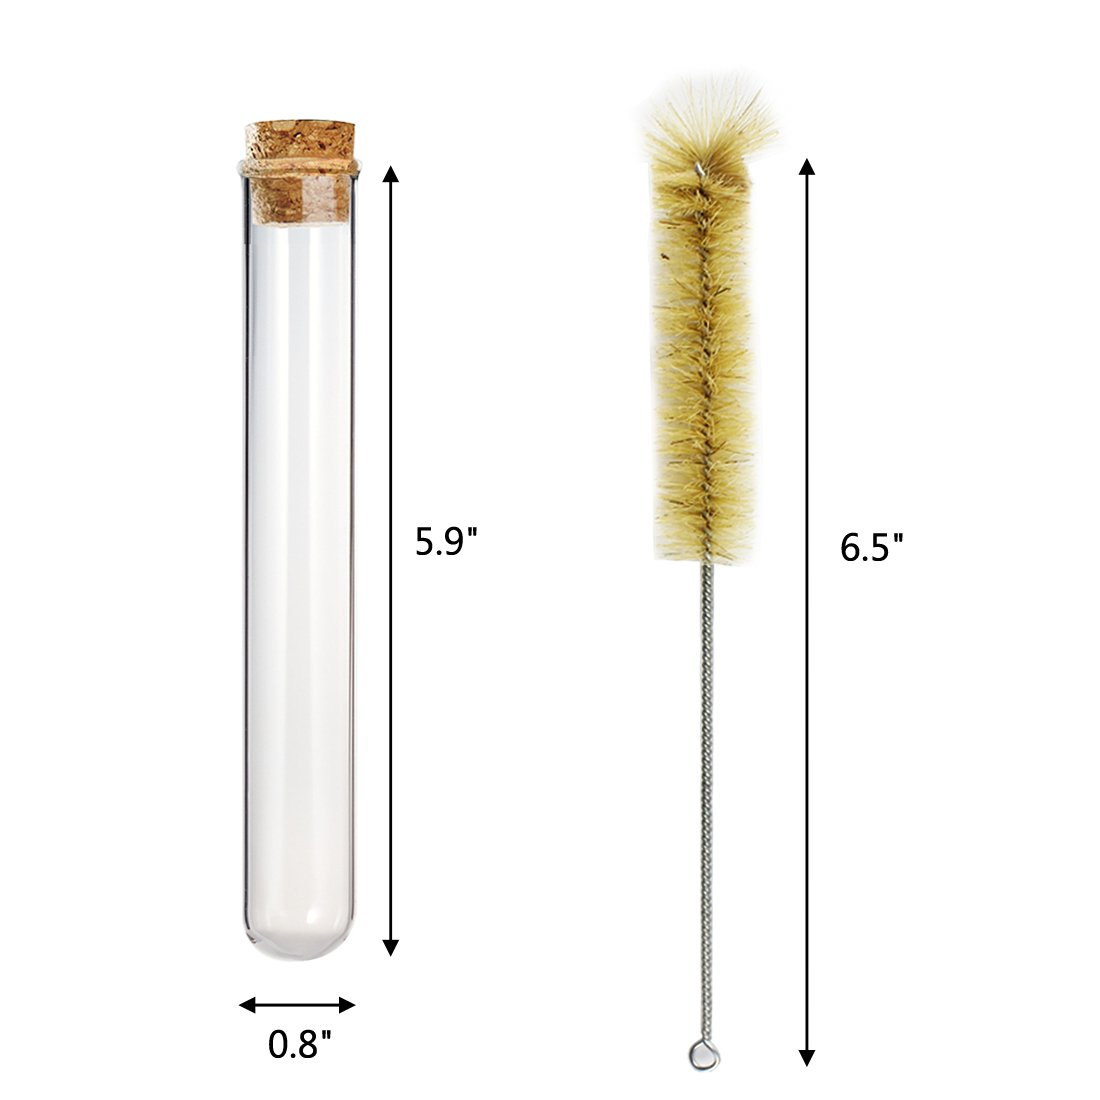 DEPEPE 20 Pack 20 x 150mm Glass Test Tubes 35ml with Cork Stoppers and Brush by DEPEPE (Image #2)